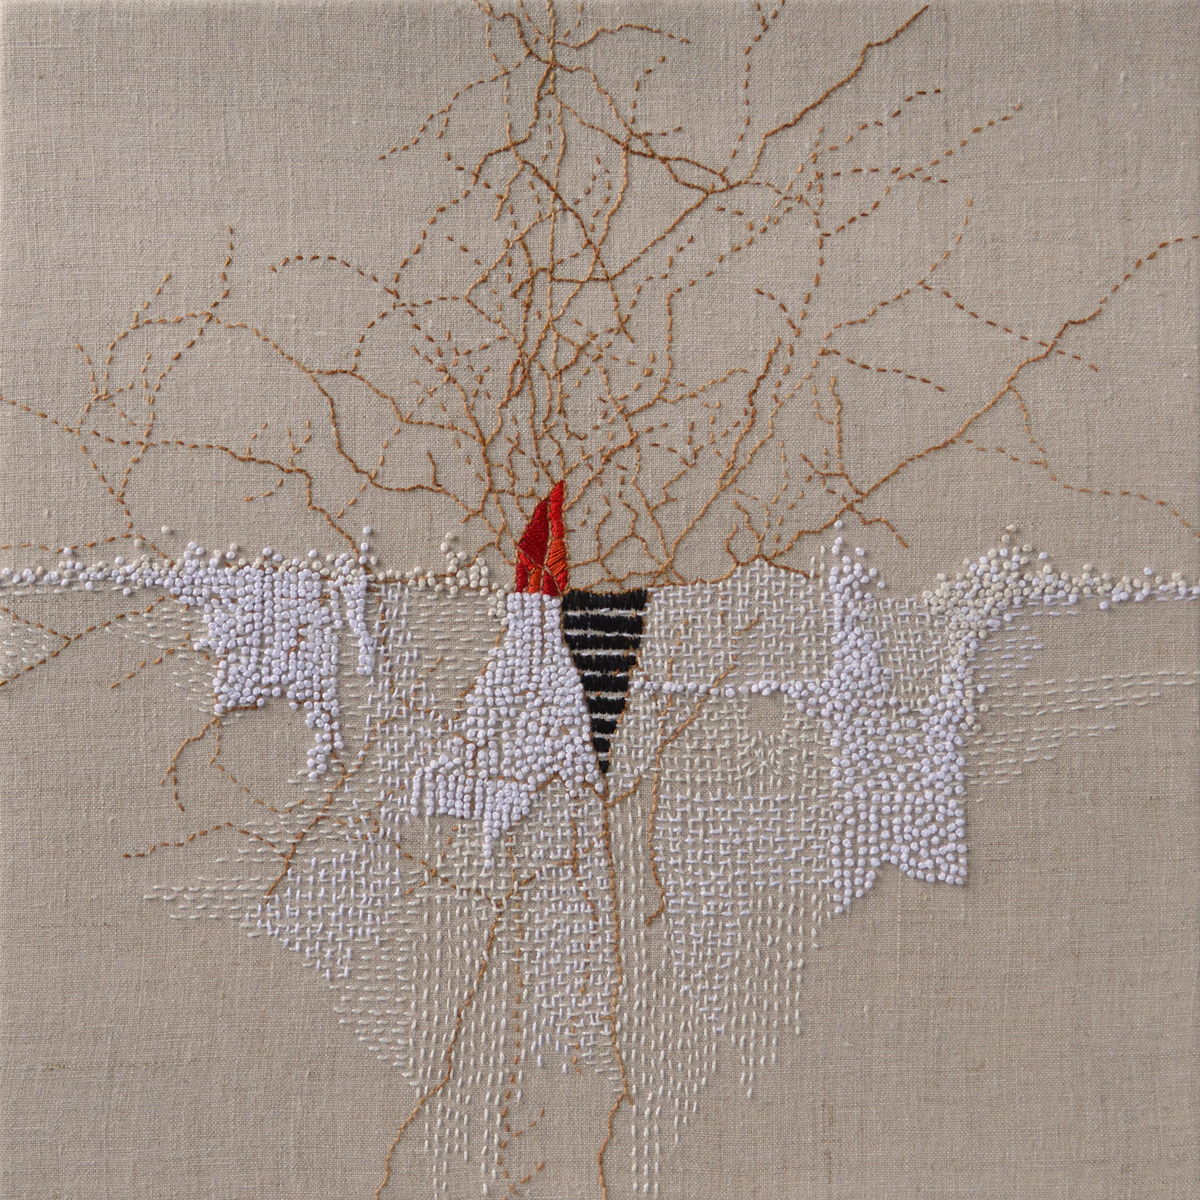 "Winter Flame, 2016, pearl cotton on linen, 14"" x 14"""